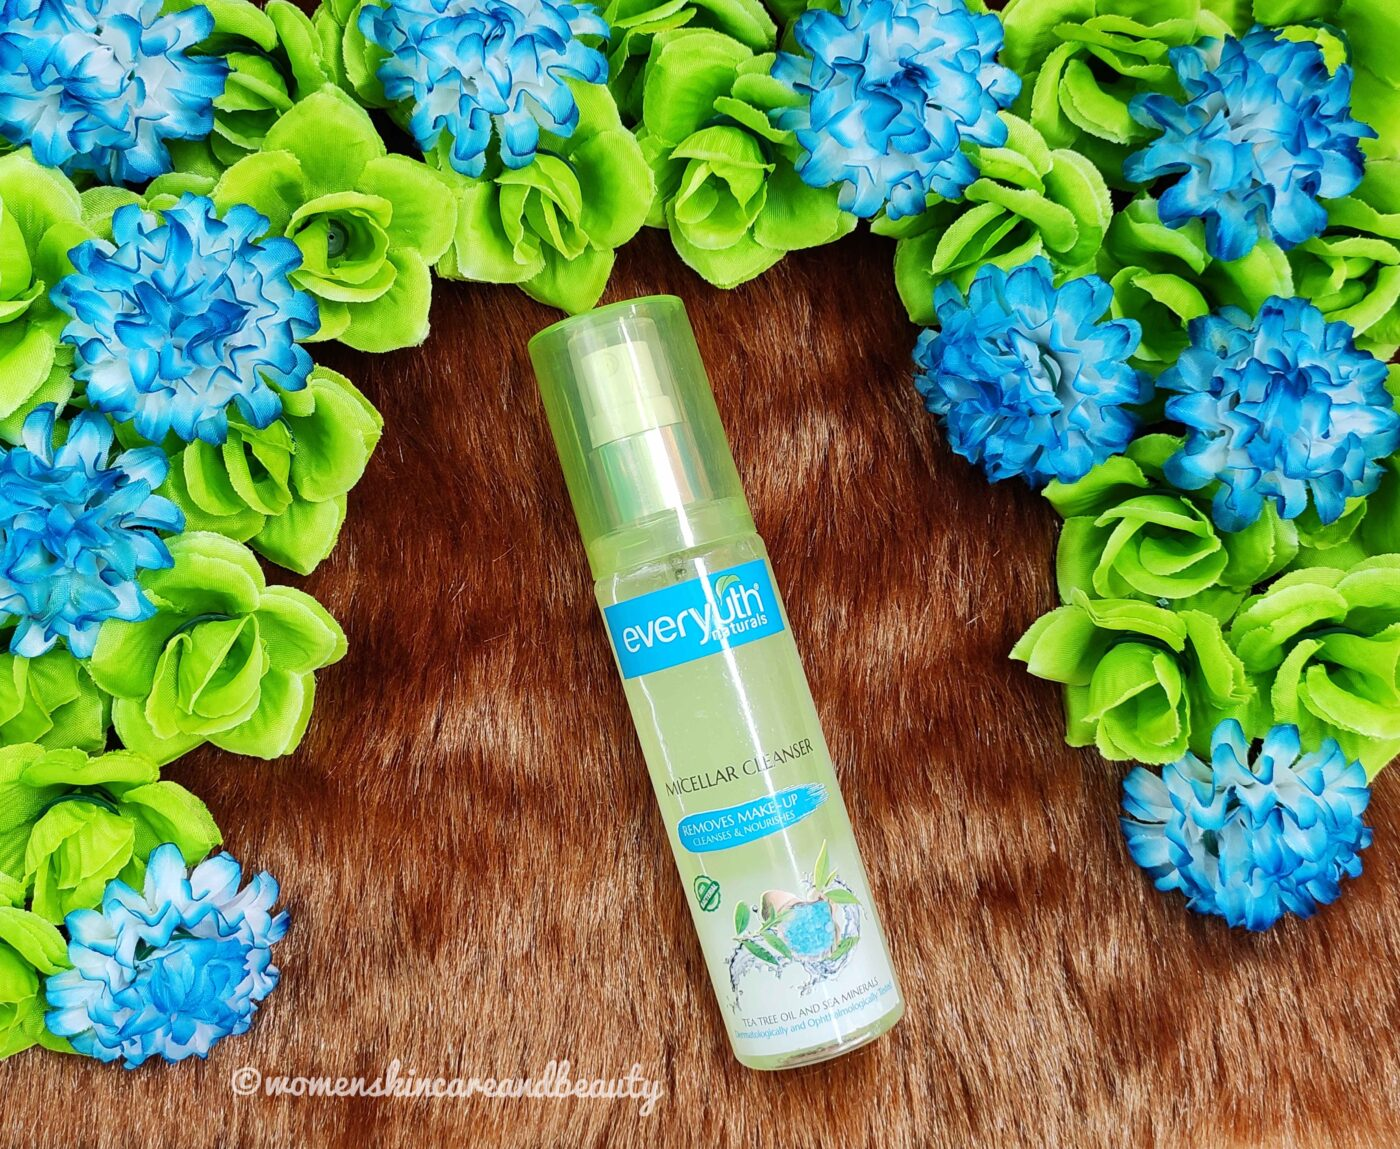 Everyuth Naturals Micellar Cleanser